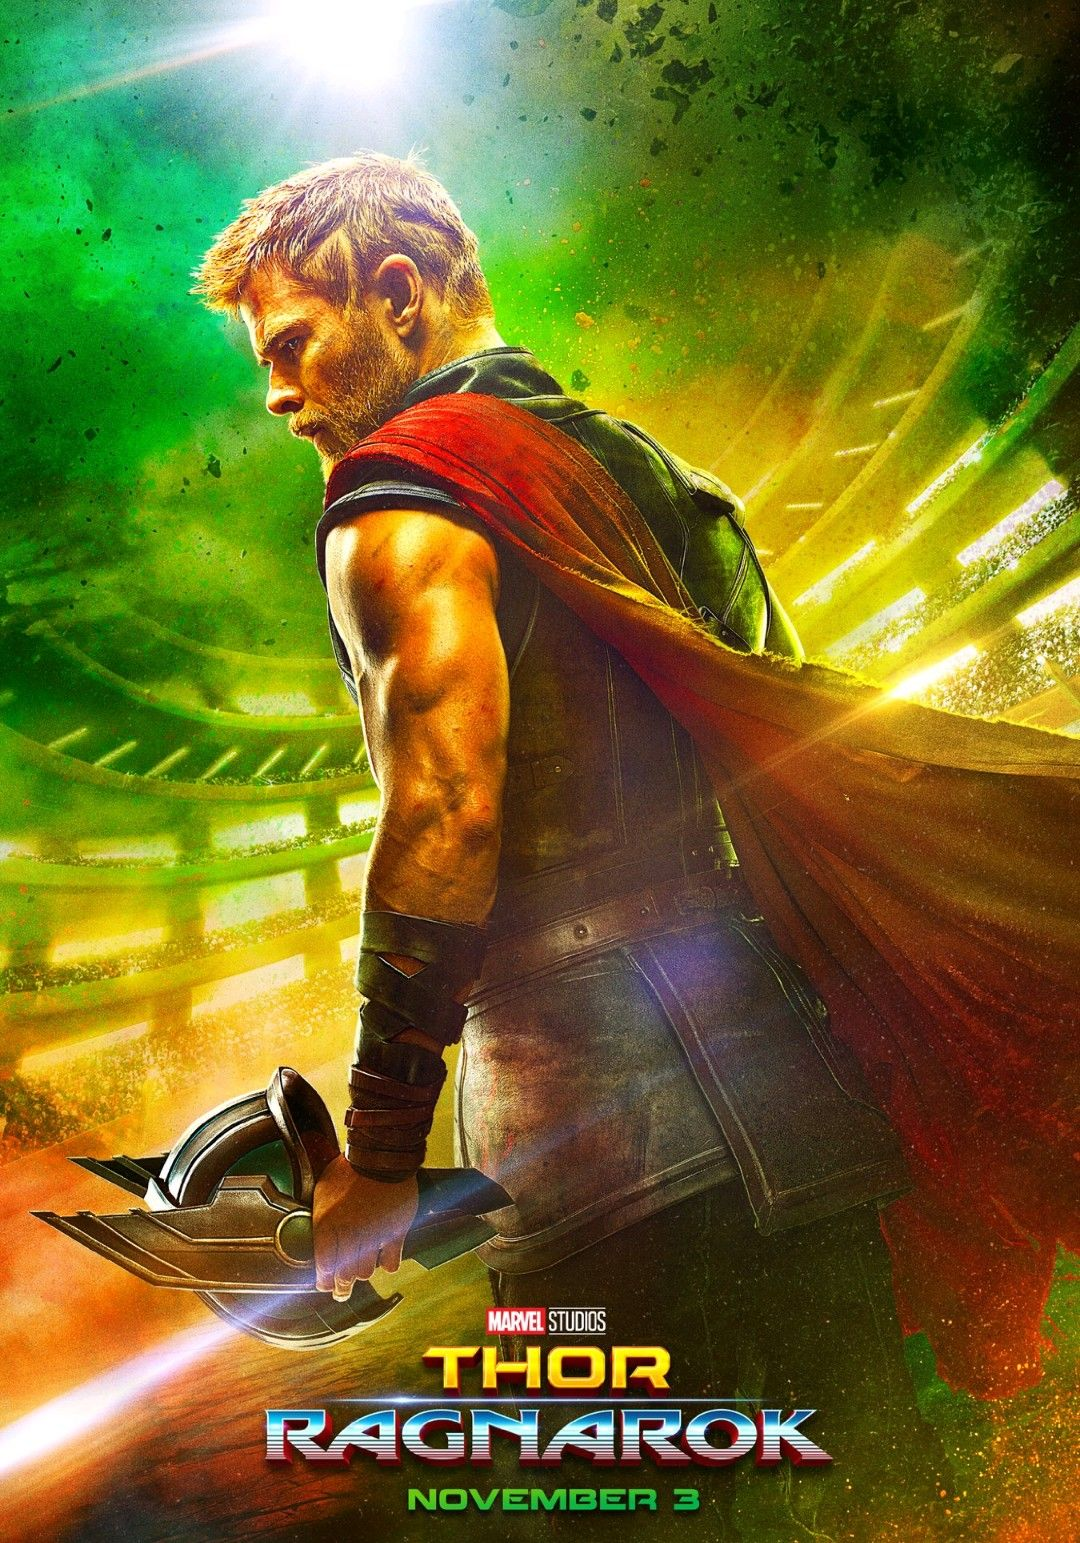 Pin By Nadeem Rashid On Awesome Movie Posters Ragnarok Movie Thor Ragnarok Movie Watch Thor